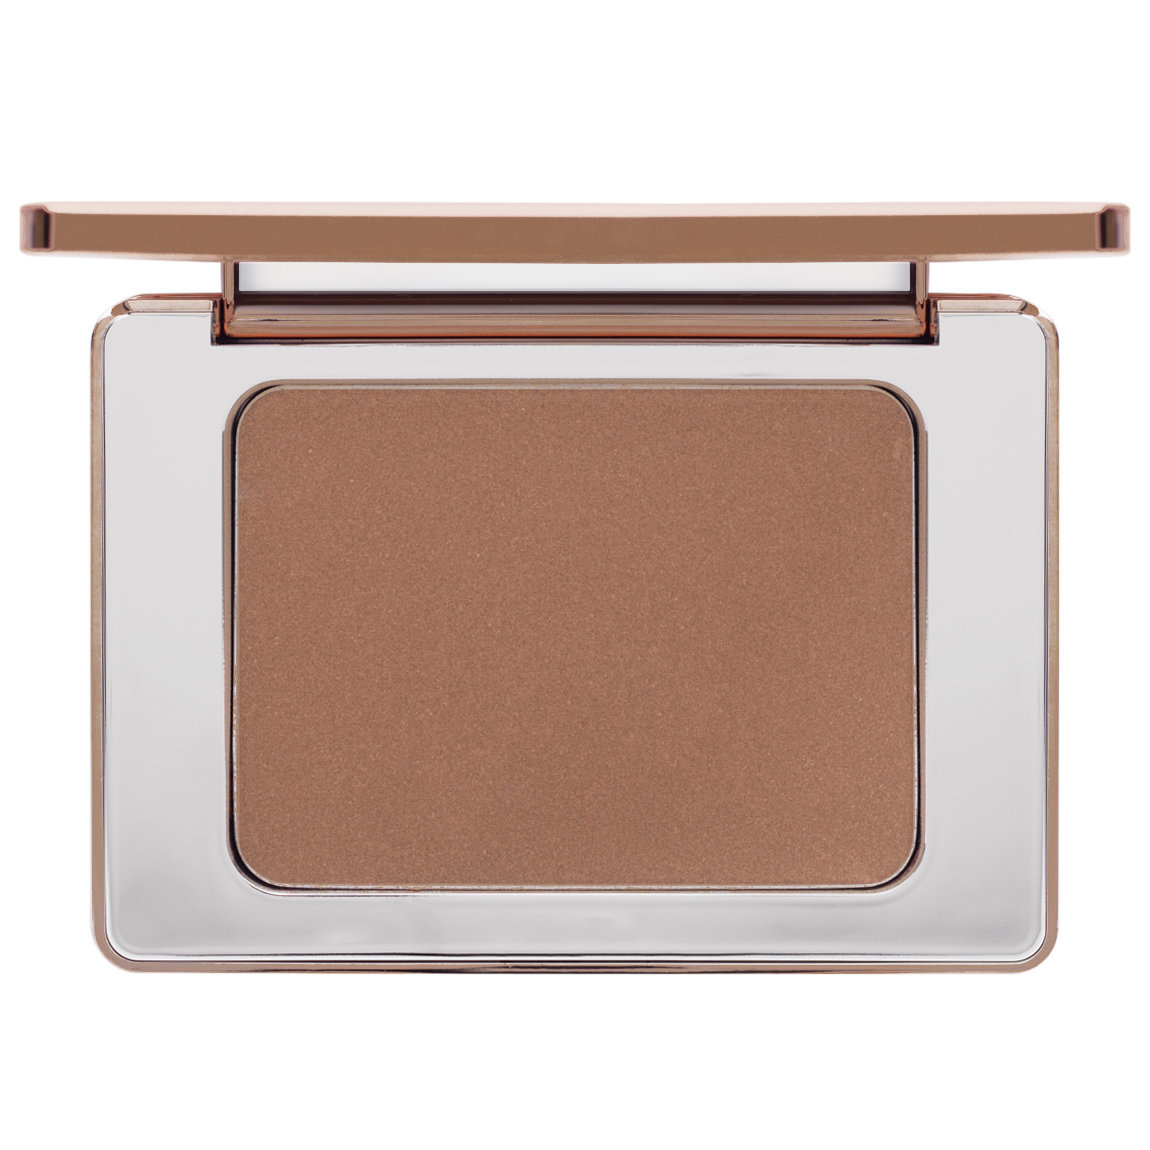 Natasha Denona Contour Sculpting Powder 04 Dark product smear.